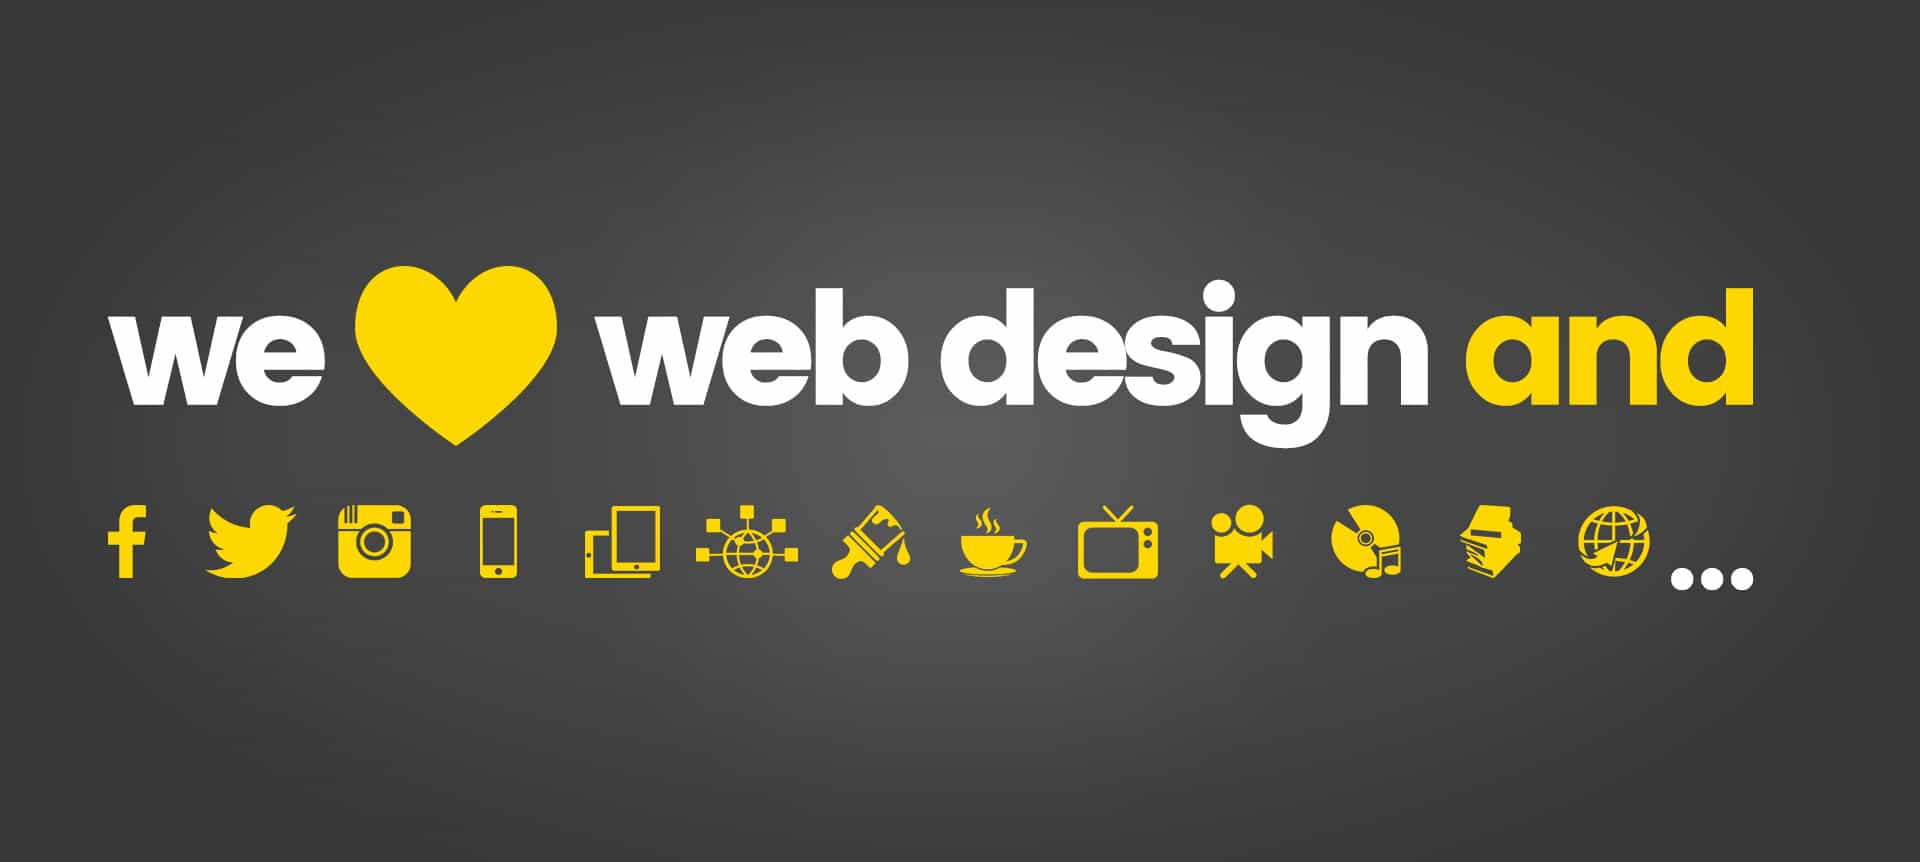 web design development company